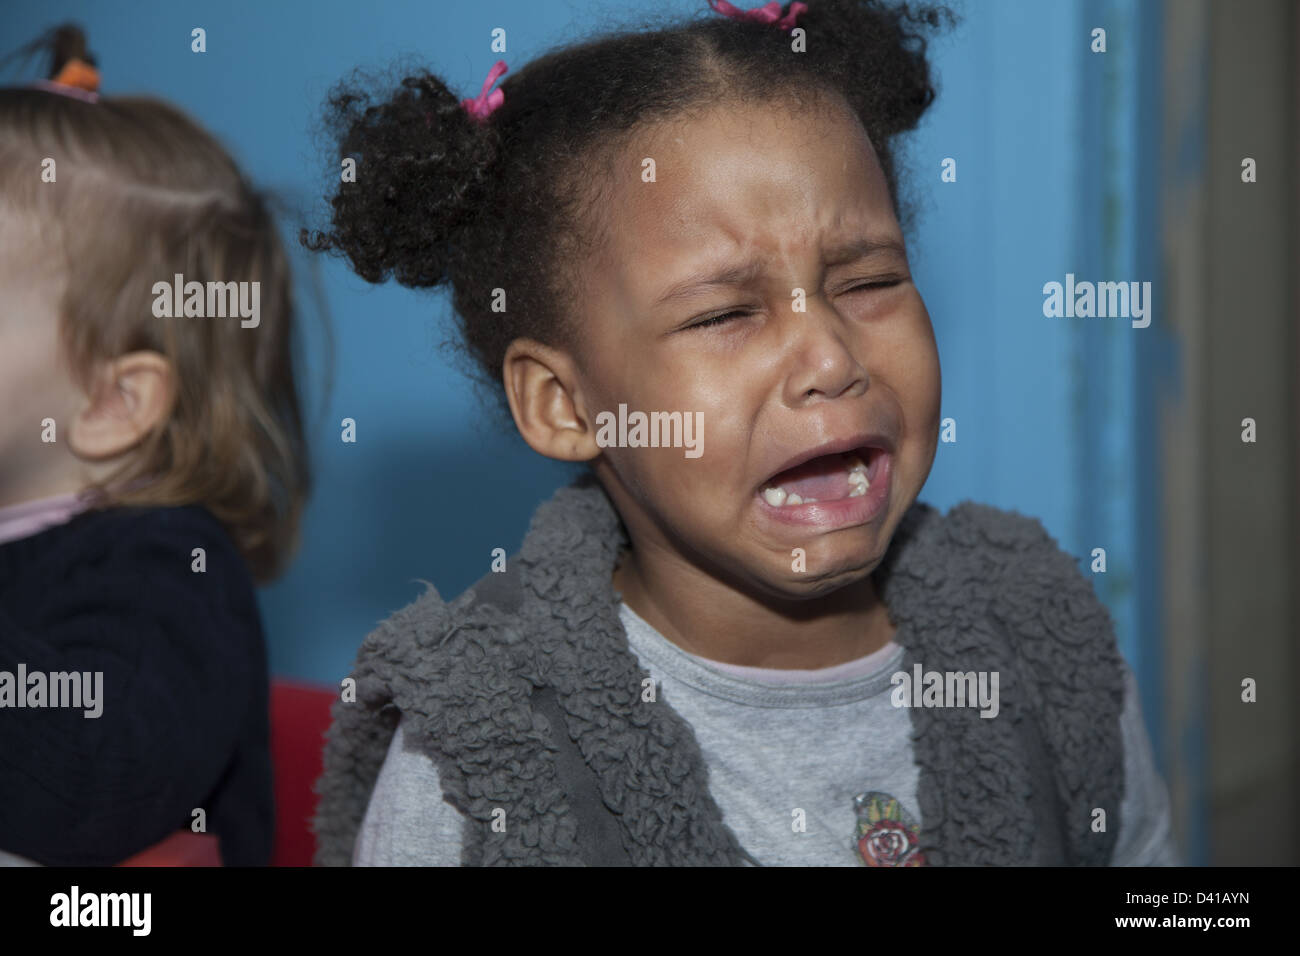 Upset child at a multicultural nursery school and early learning center in Brooklyn, NY. - Stock Image